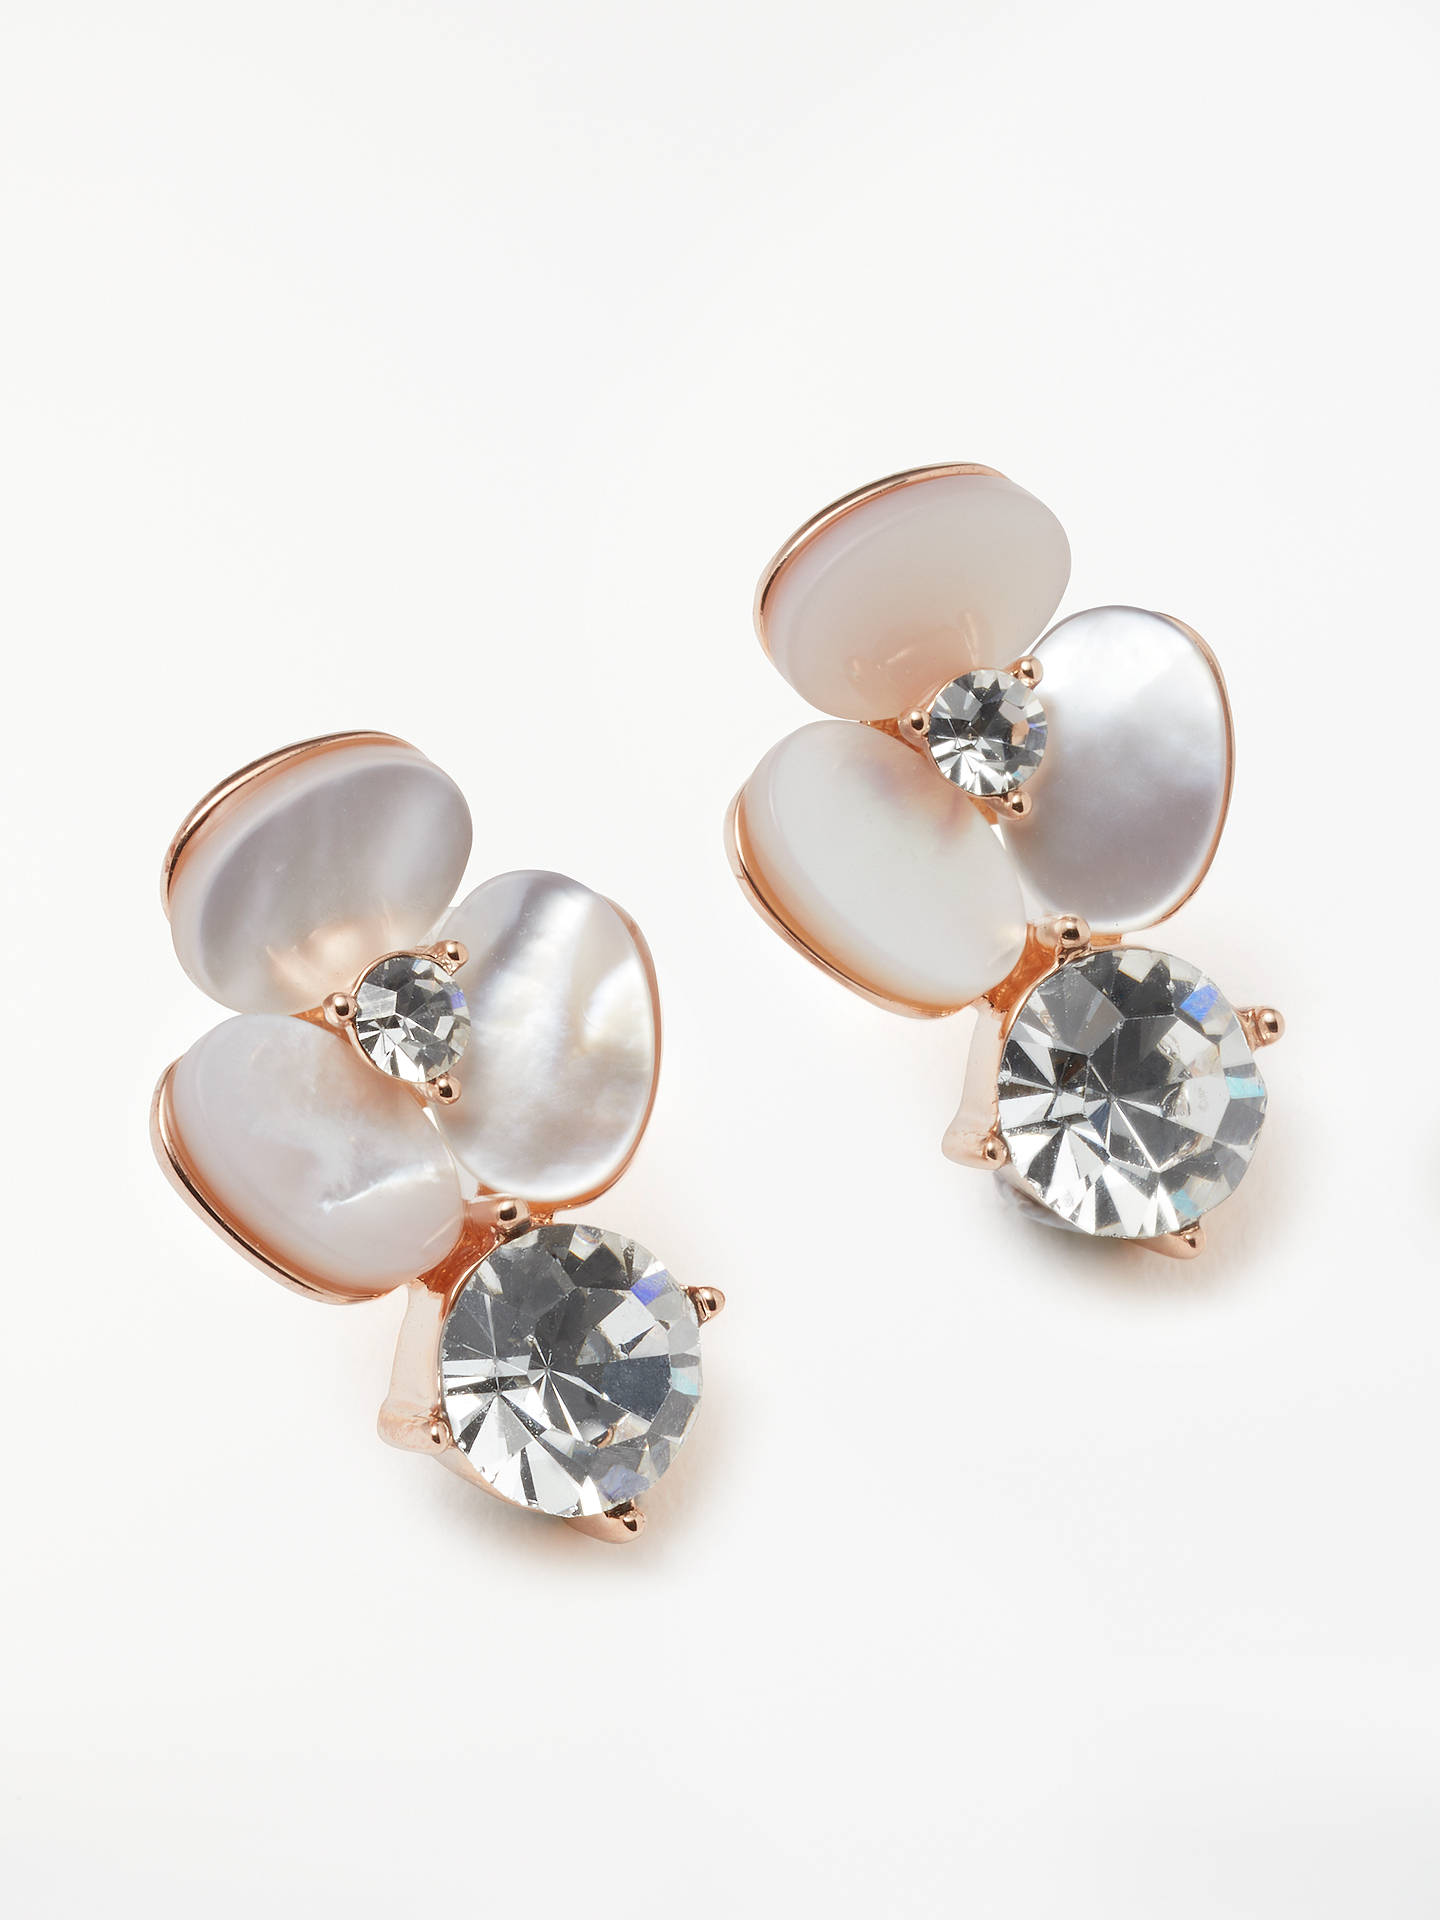 119f4cbdd Buy kate spade new york Mother of Pearl Flower Stud Earrings, Rose  Gold/Neutrals ...